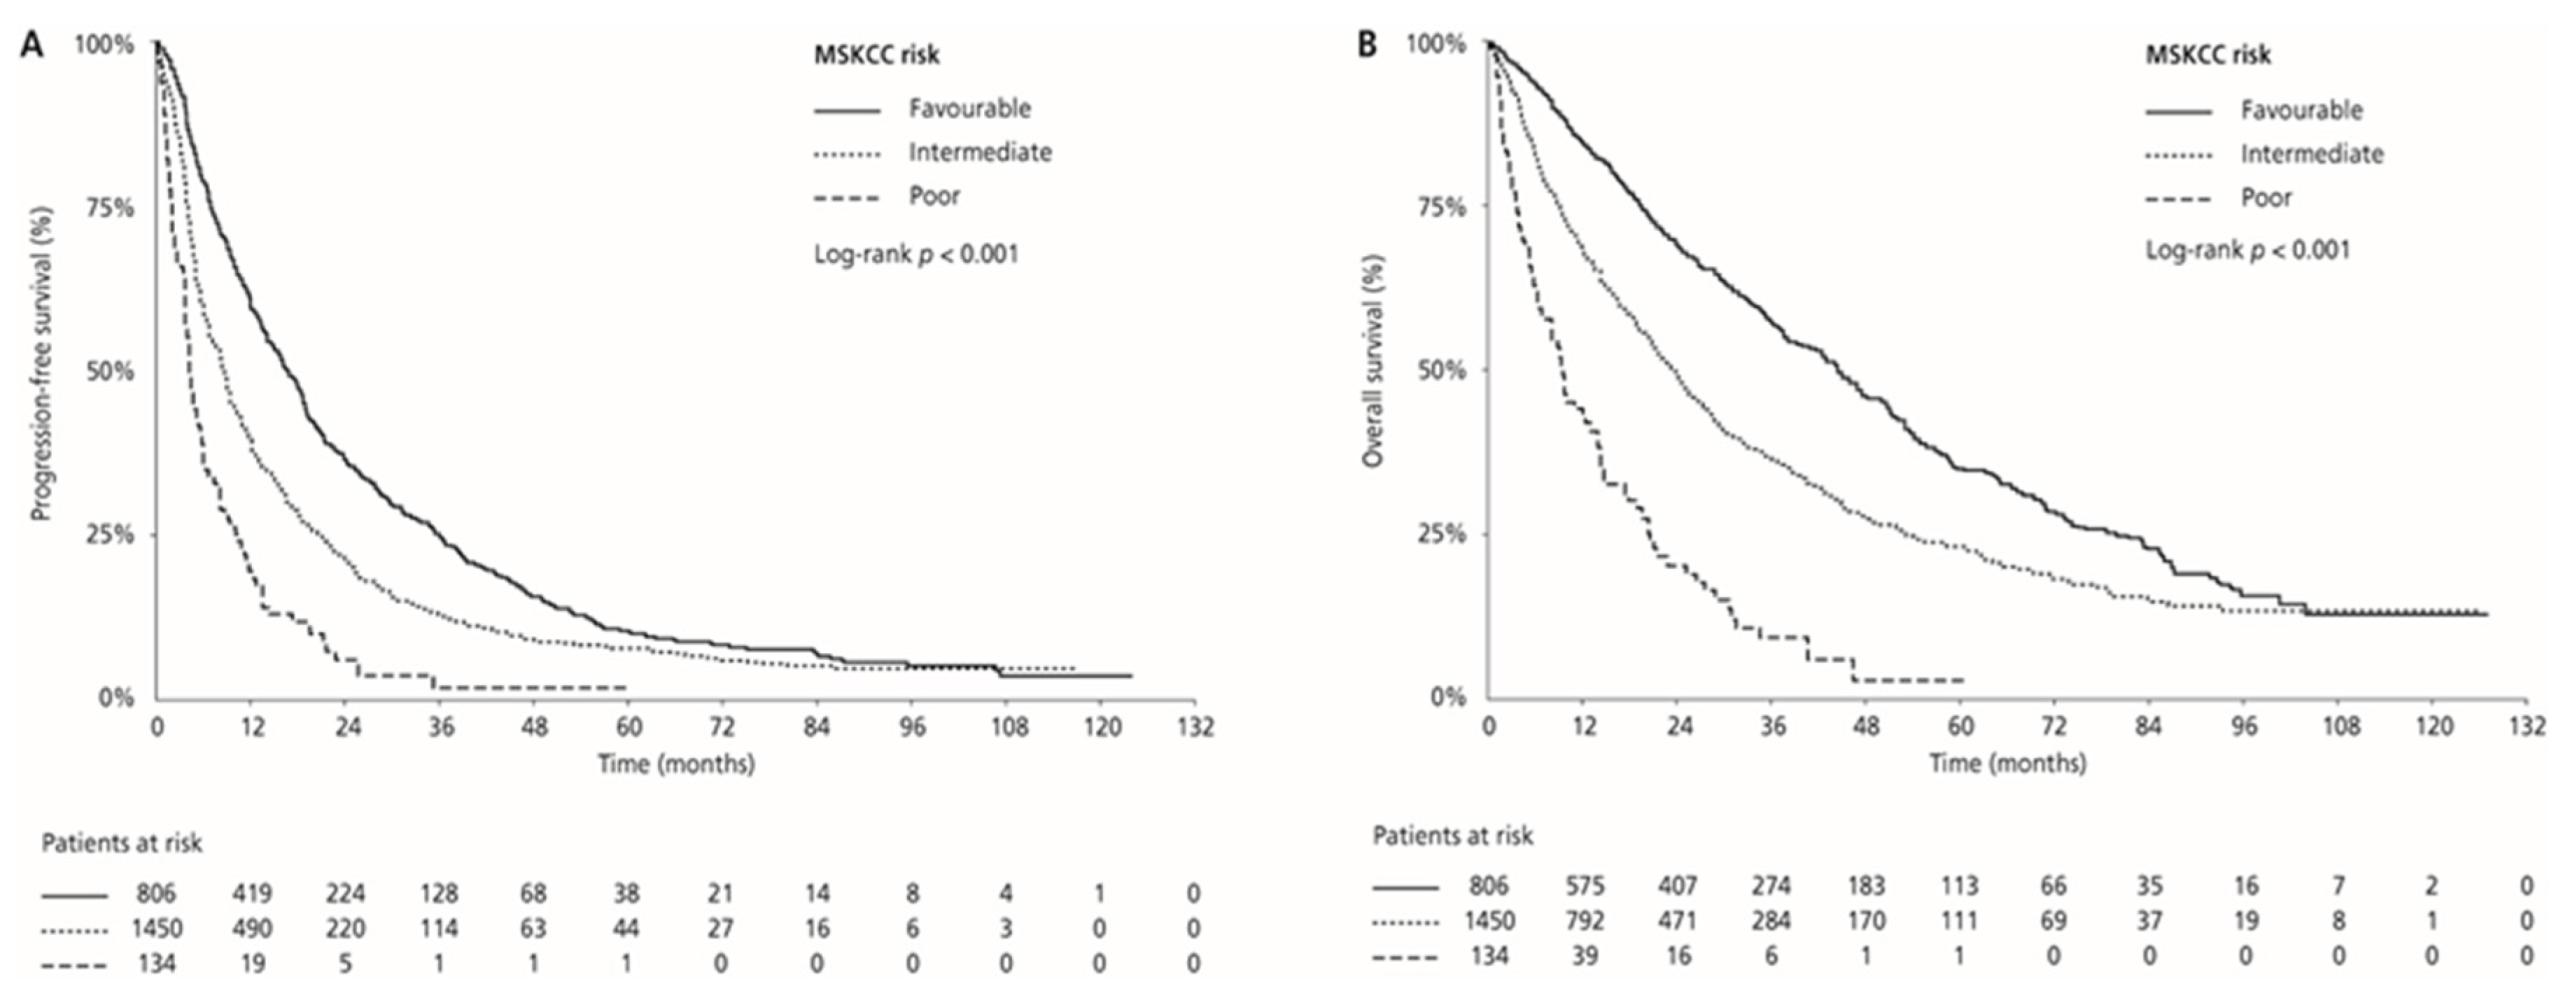 Cancers Free Full Text Outcomes According To Mskcc Risk Score With Focus On The Intermediate Risk Group In Metastatic Renal Cell Carcinoma Patients Treated With First Line Sunitinib A Retrospective Analysis Of 2390